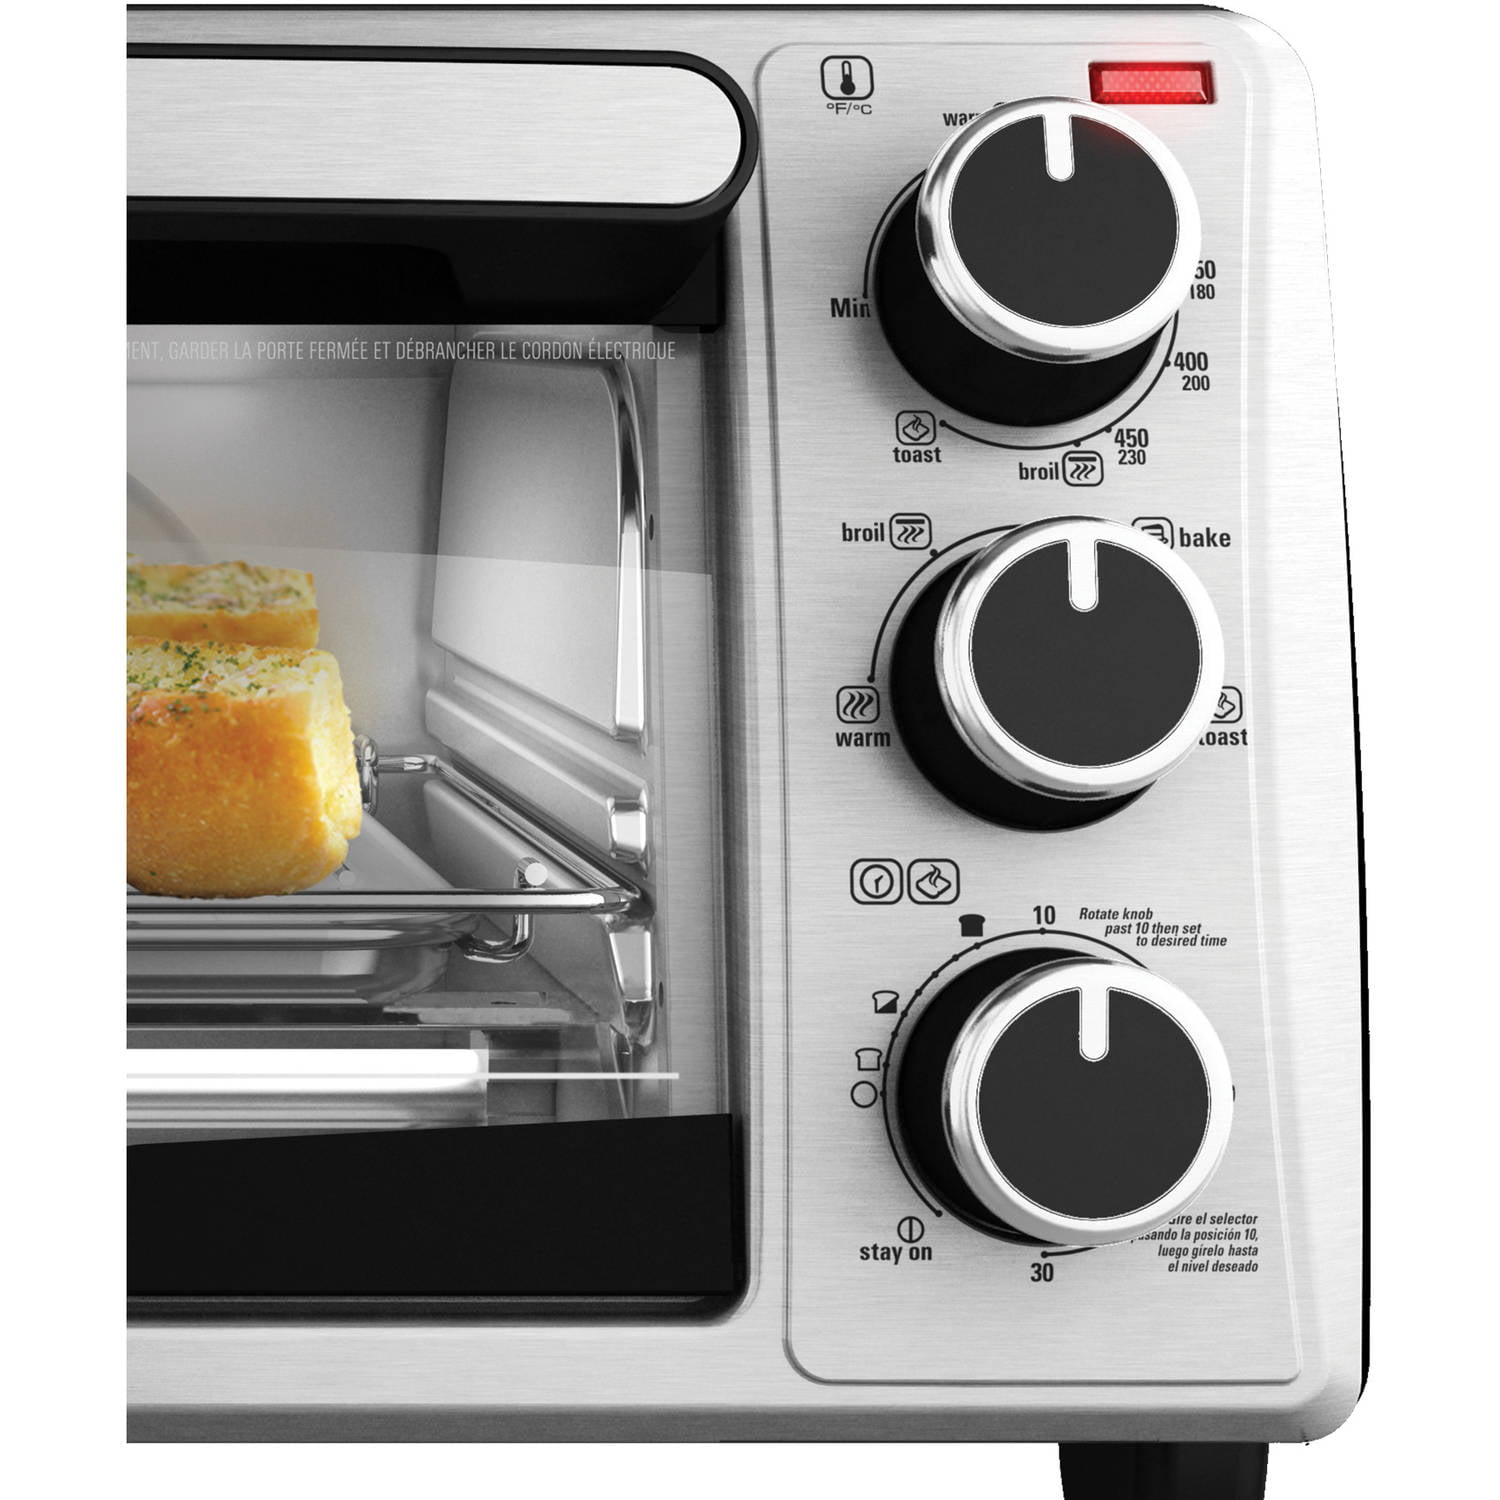 under sale for wid toaster black qlt decker prod hei the cabinet oven spacemaker p spin slice